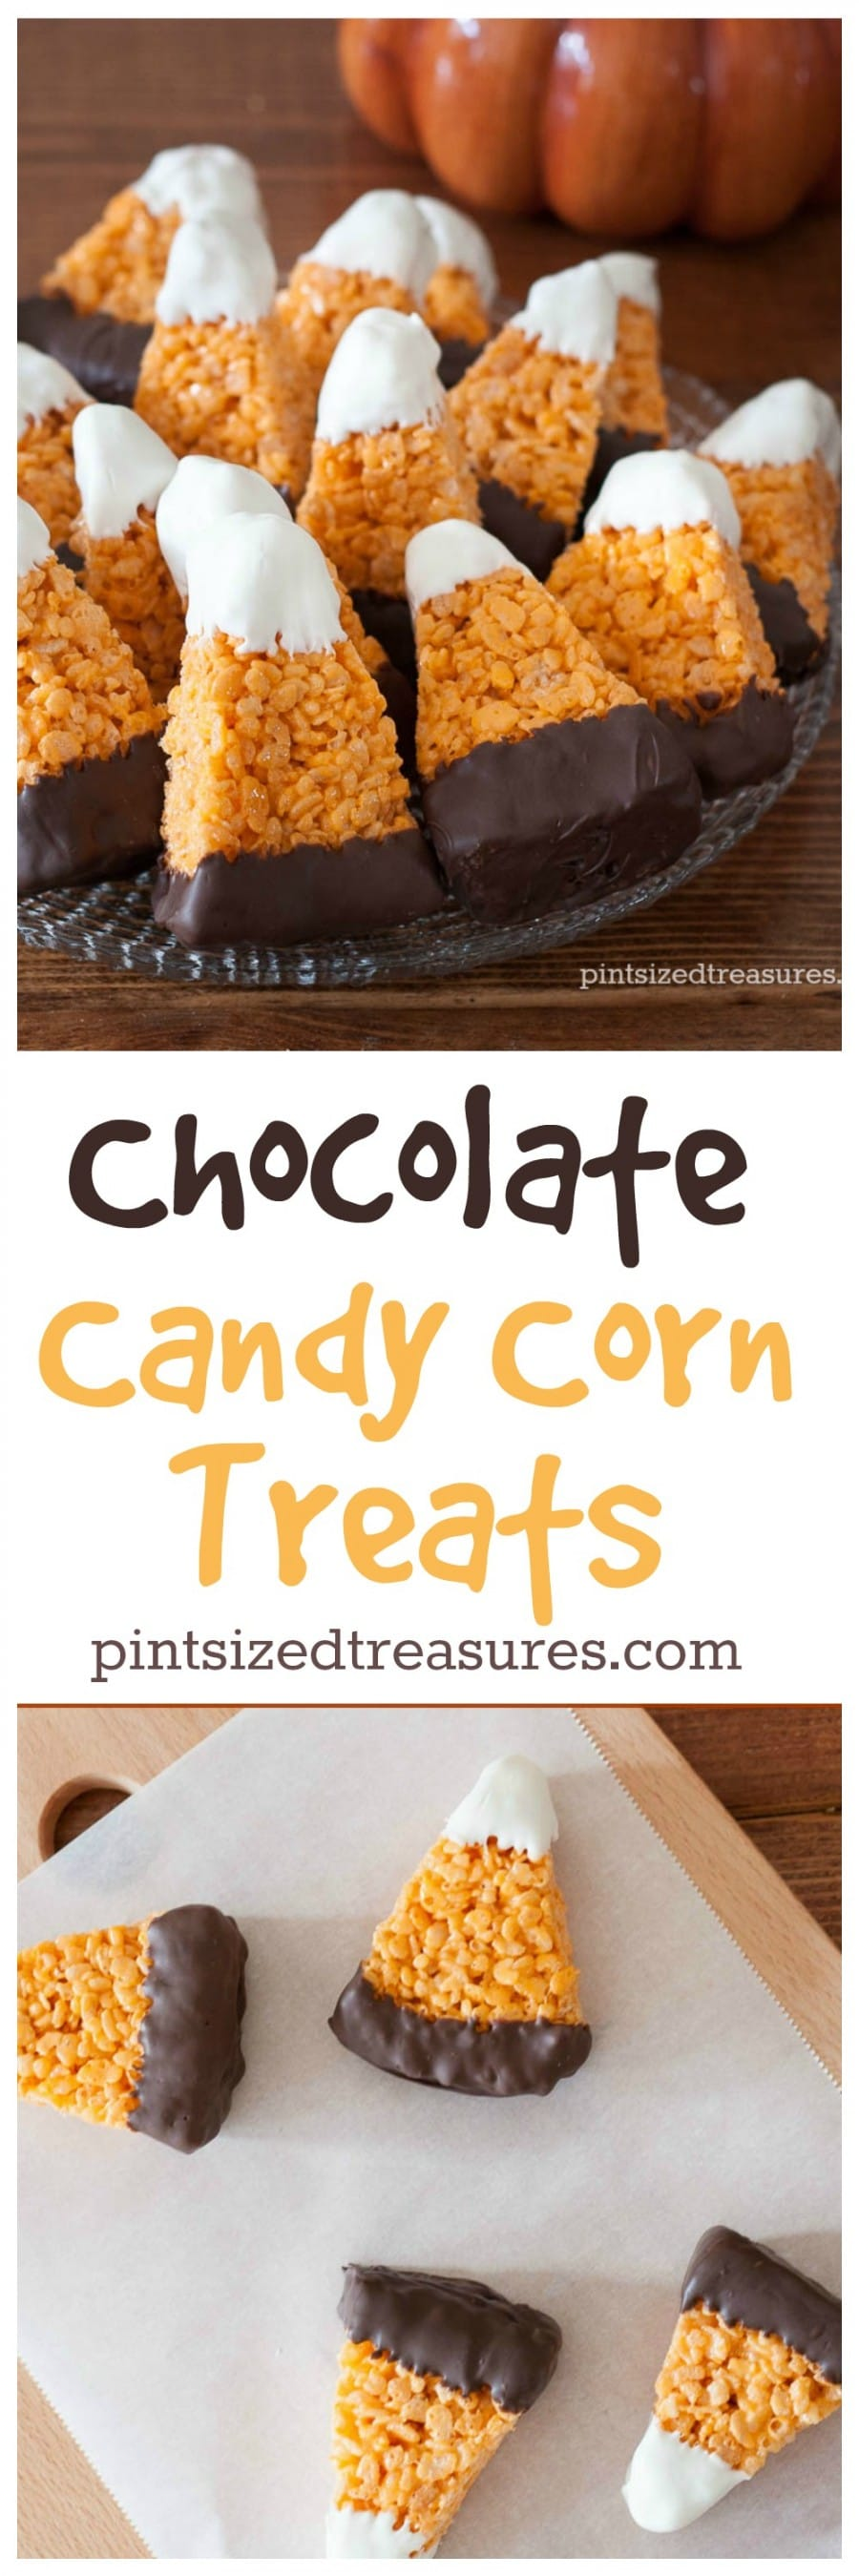 candy corn treats recipe